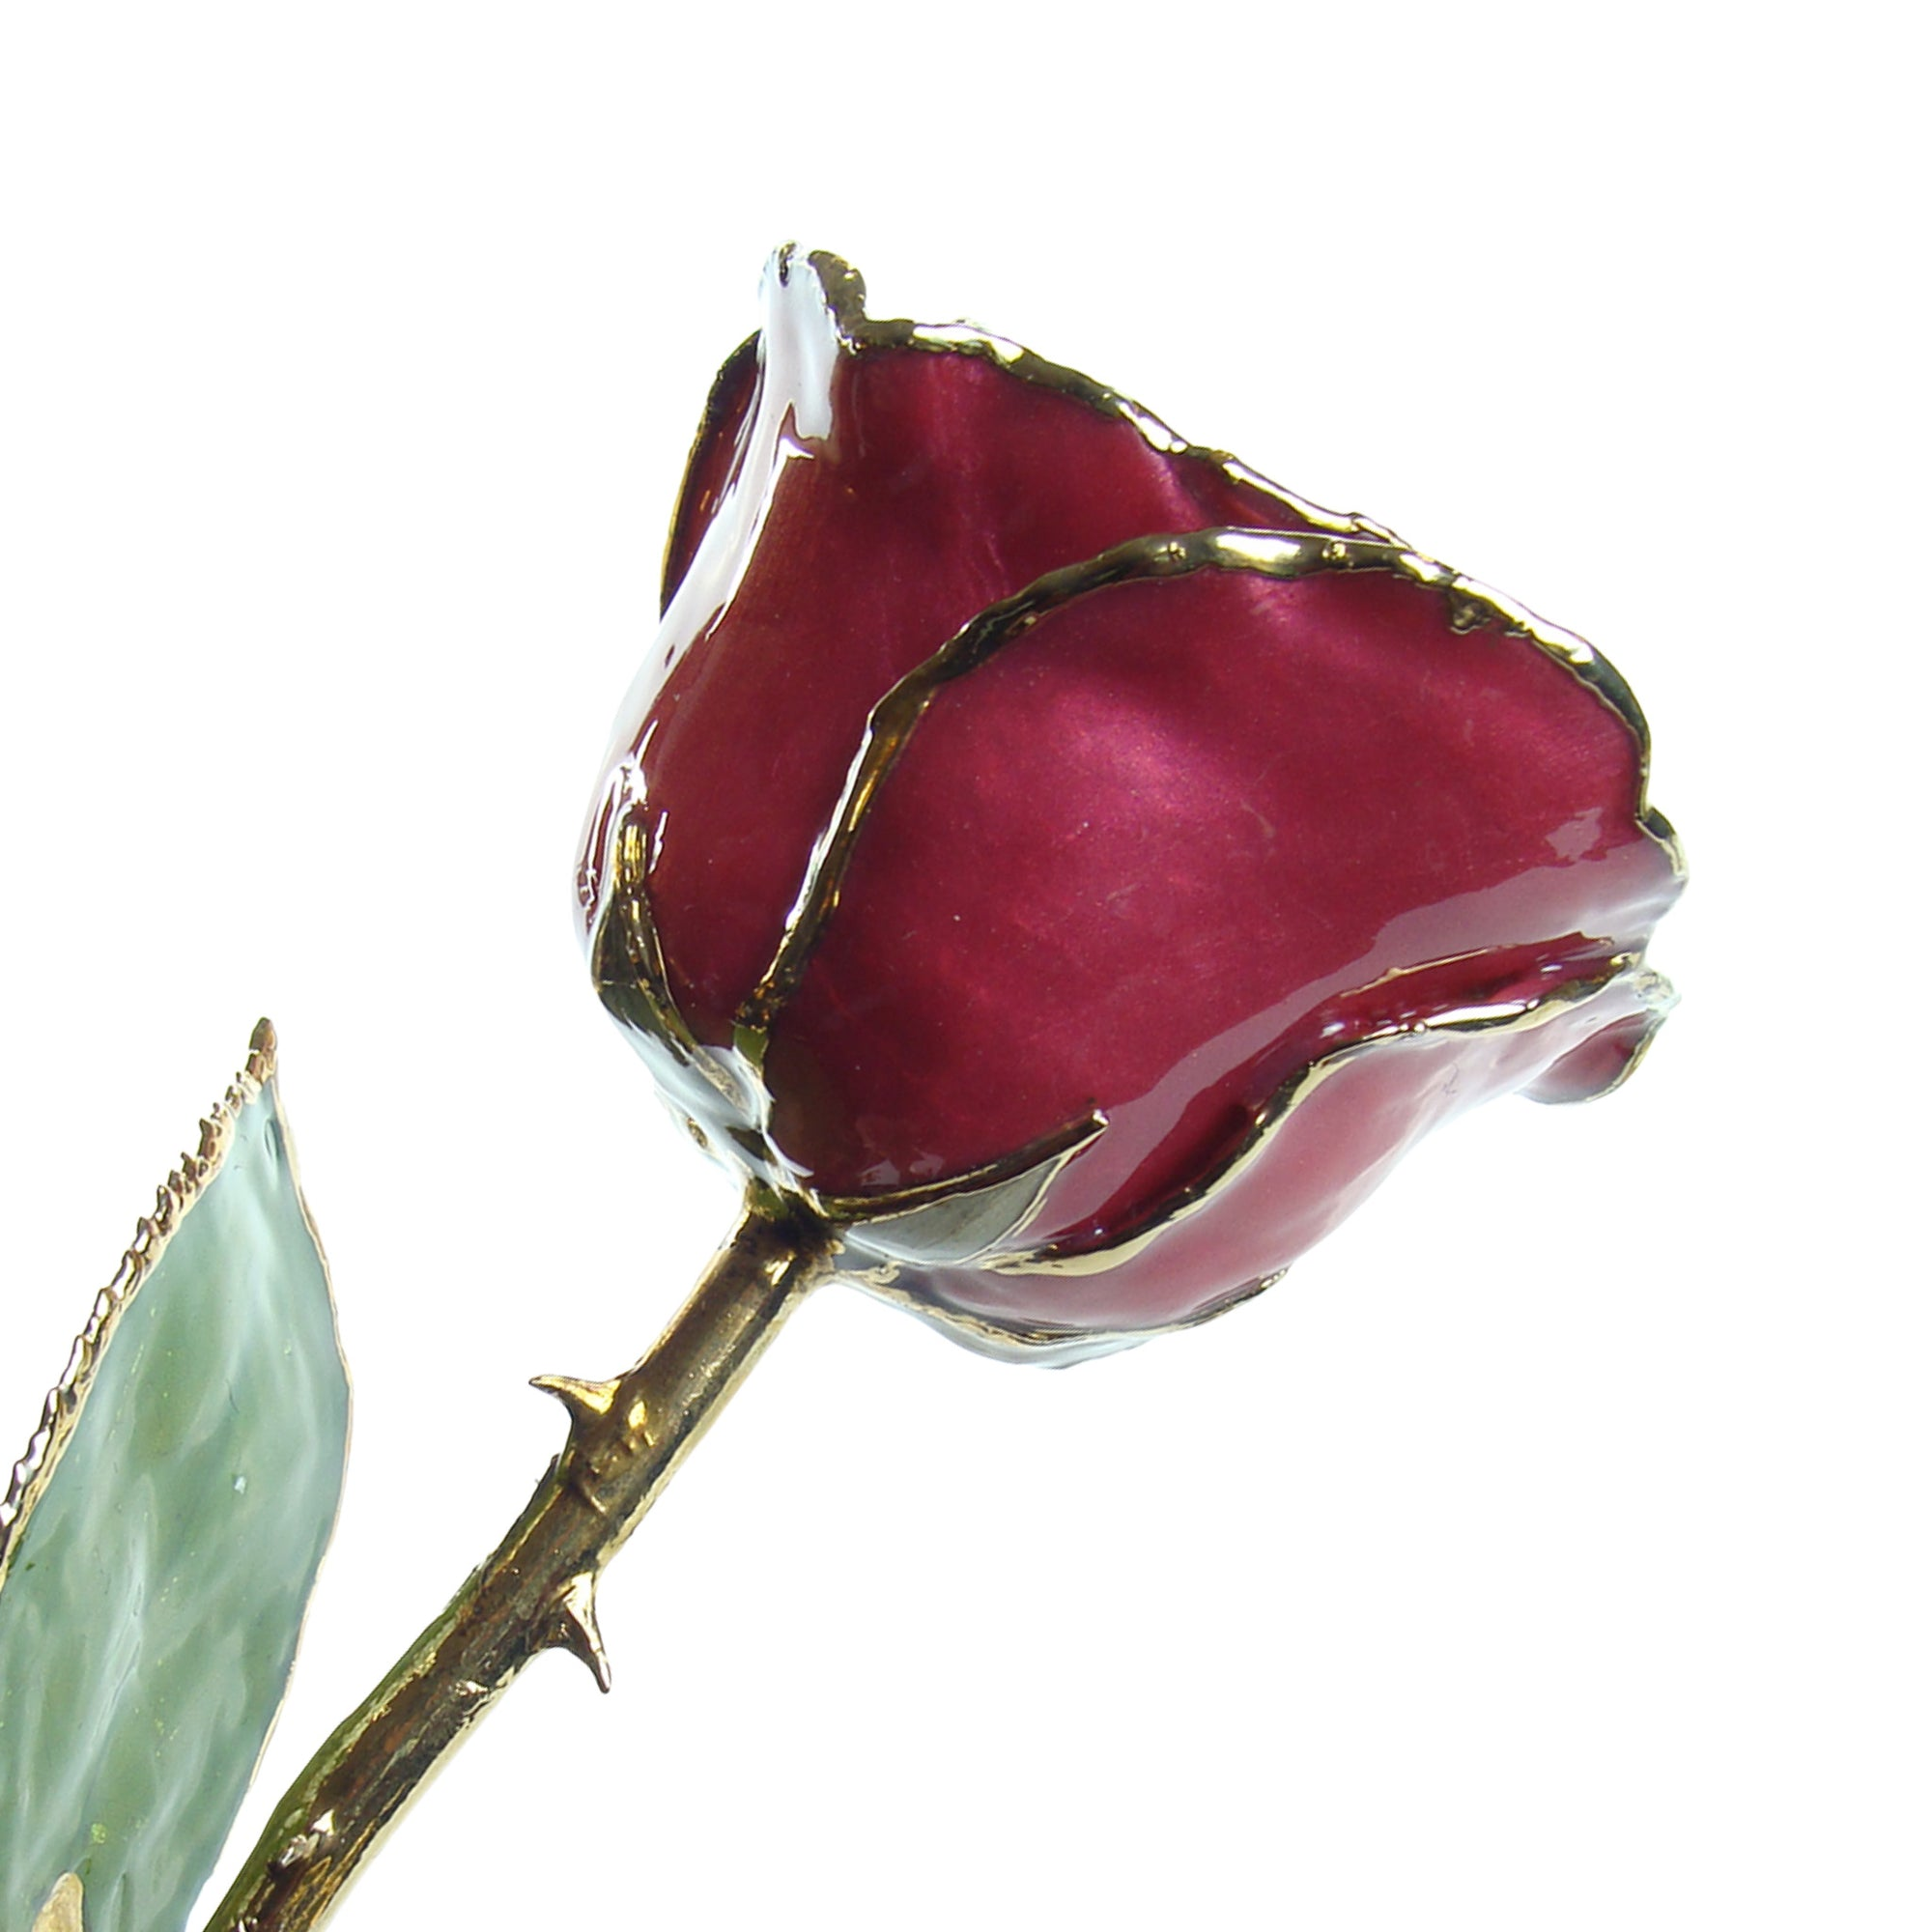 24K Gold Trimmed Forever Rose in Beating Hearts Color View of Stem, Leaves, and Rose Petals and Showing Detail of Gold Trim